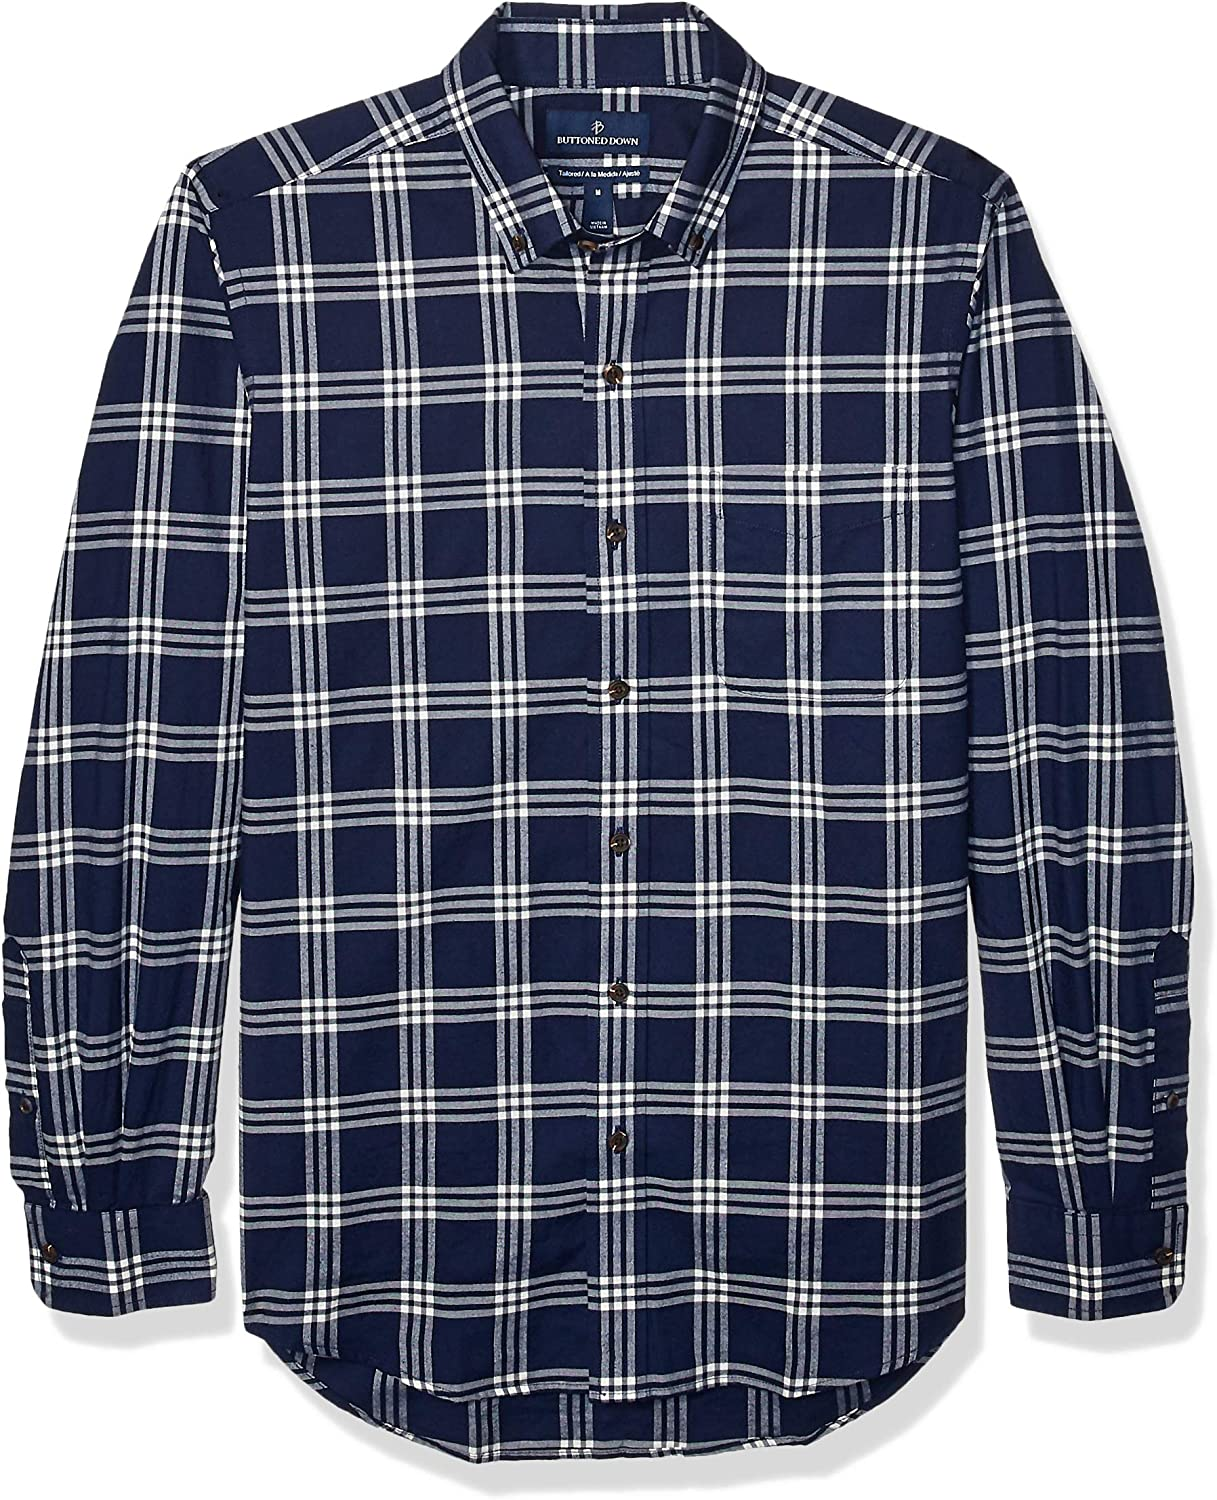 Buttoned Down Men's Tailored Fit Twill Cotton Brushed Sale Max 86% OFF item Pla Supima